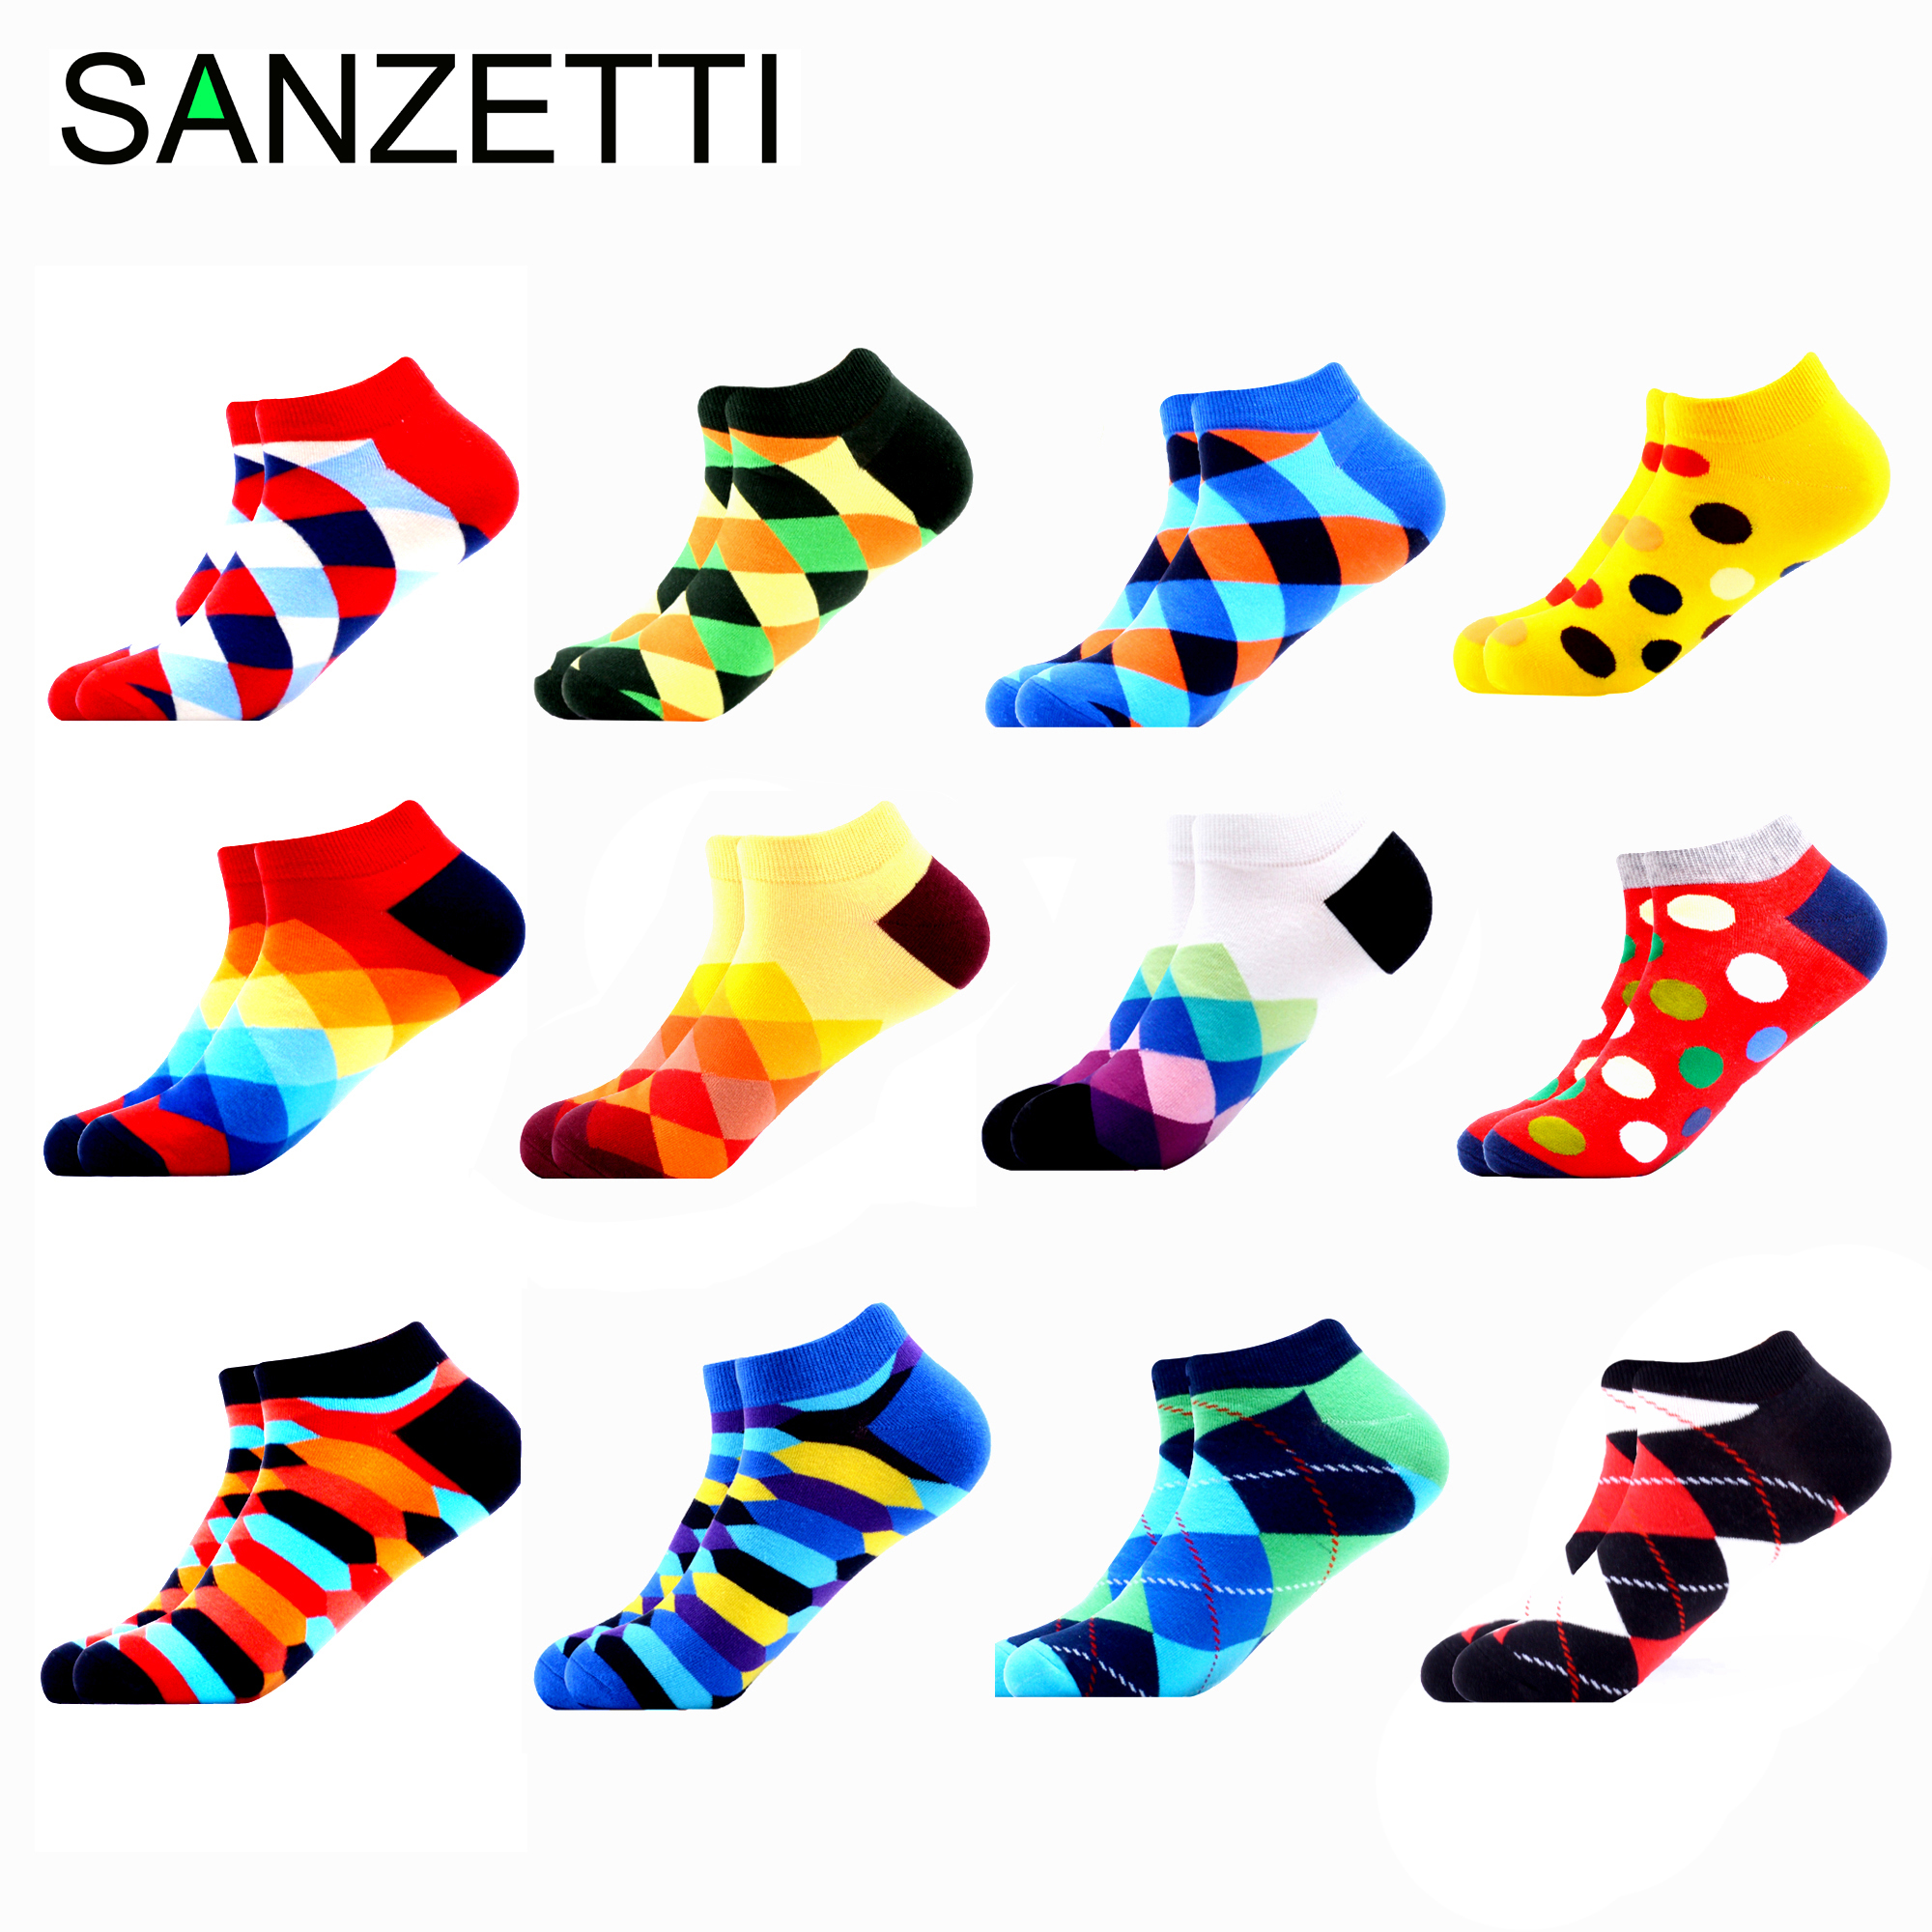 SANZETTI 12 Pairs/Lot Summer Women Casual Novelty Colorful Combed Cotton Ankle Socks Harajuku Happy Short Socks Plaid Tend Socks